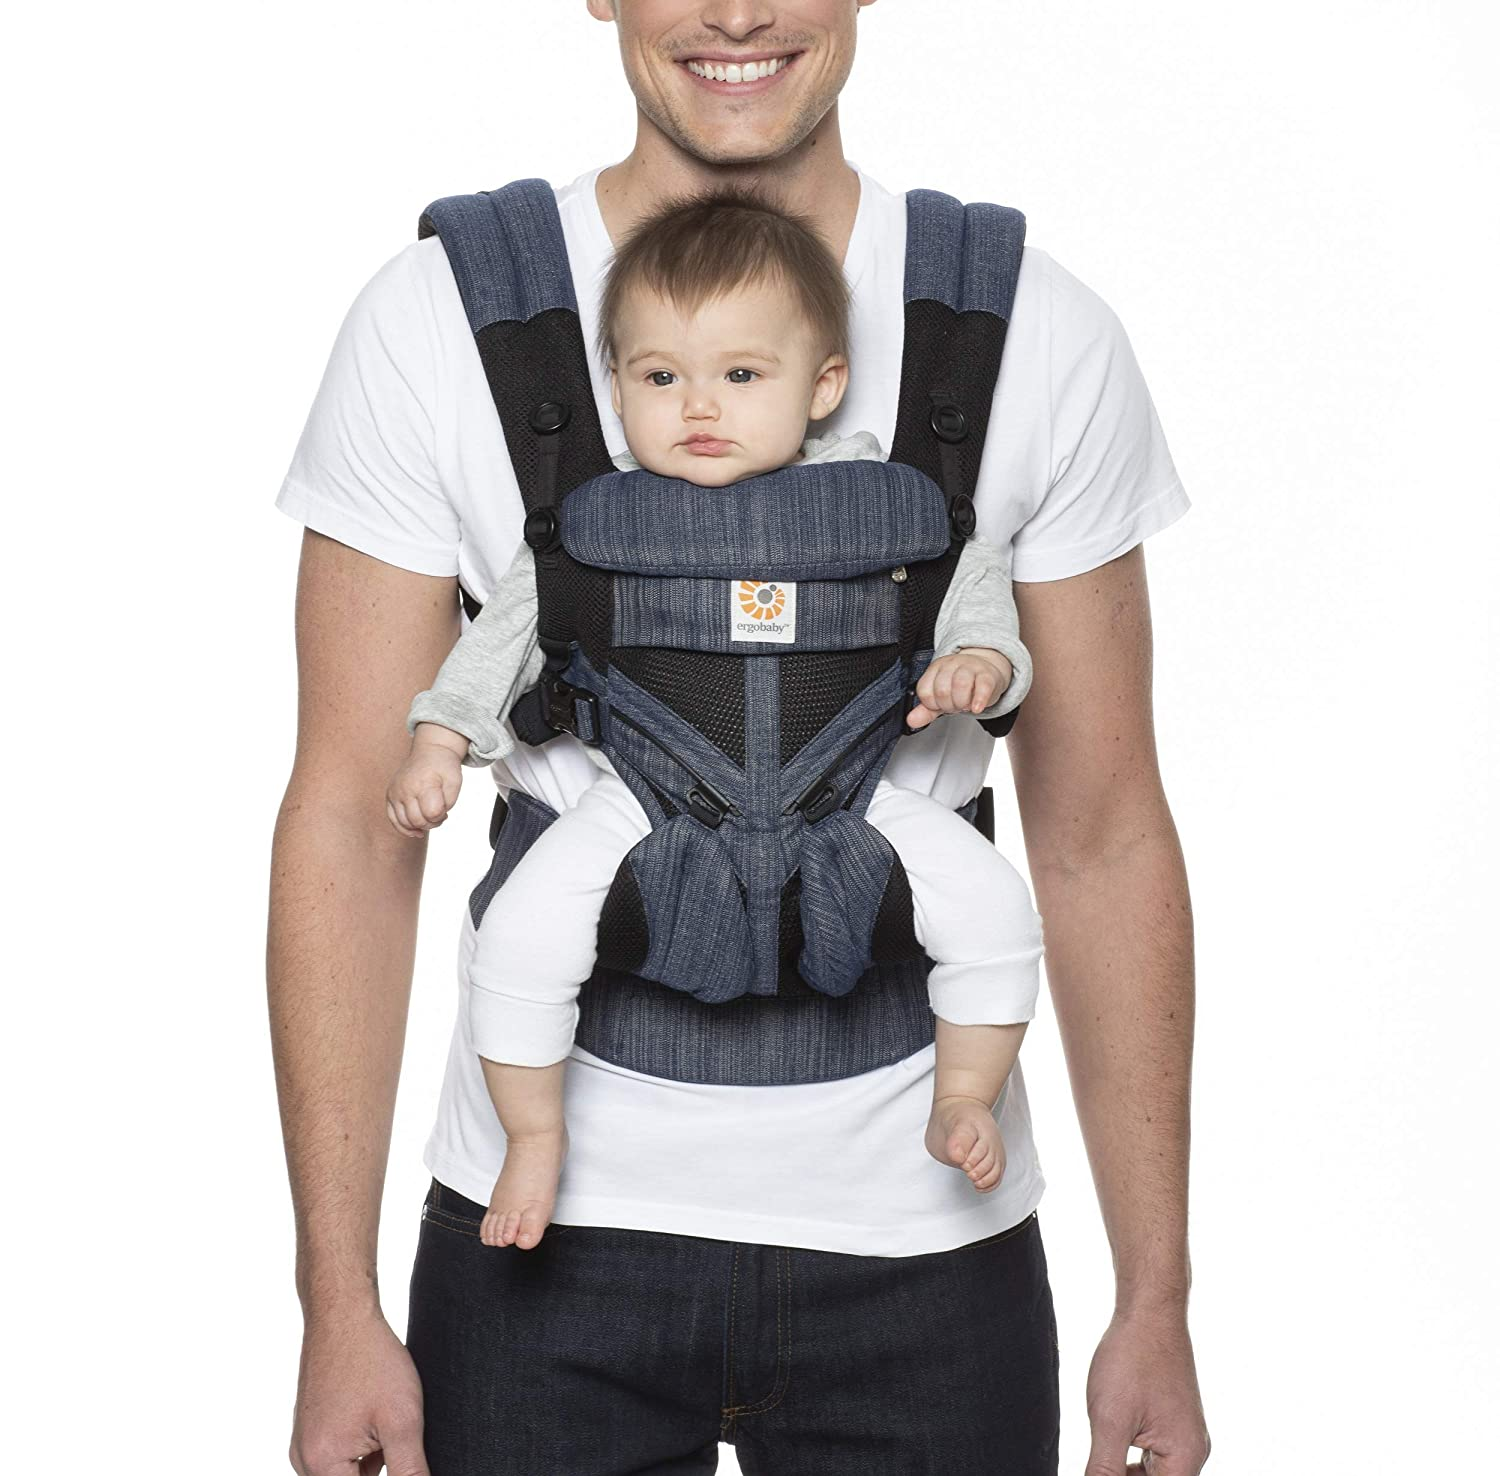 Ergobaby Omni 360 All-Position Baby Carrier for Newborn to Toddler with Lumbar Support & Cool Air Mesh (7-45 Lb), Classic Weave